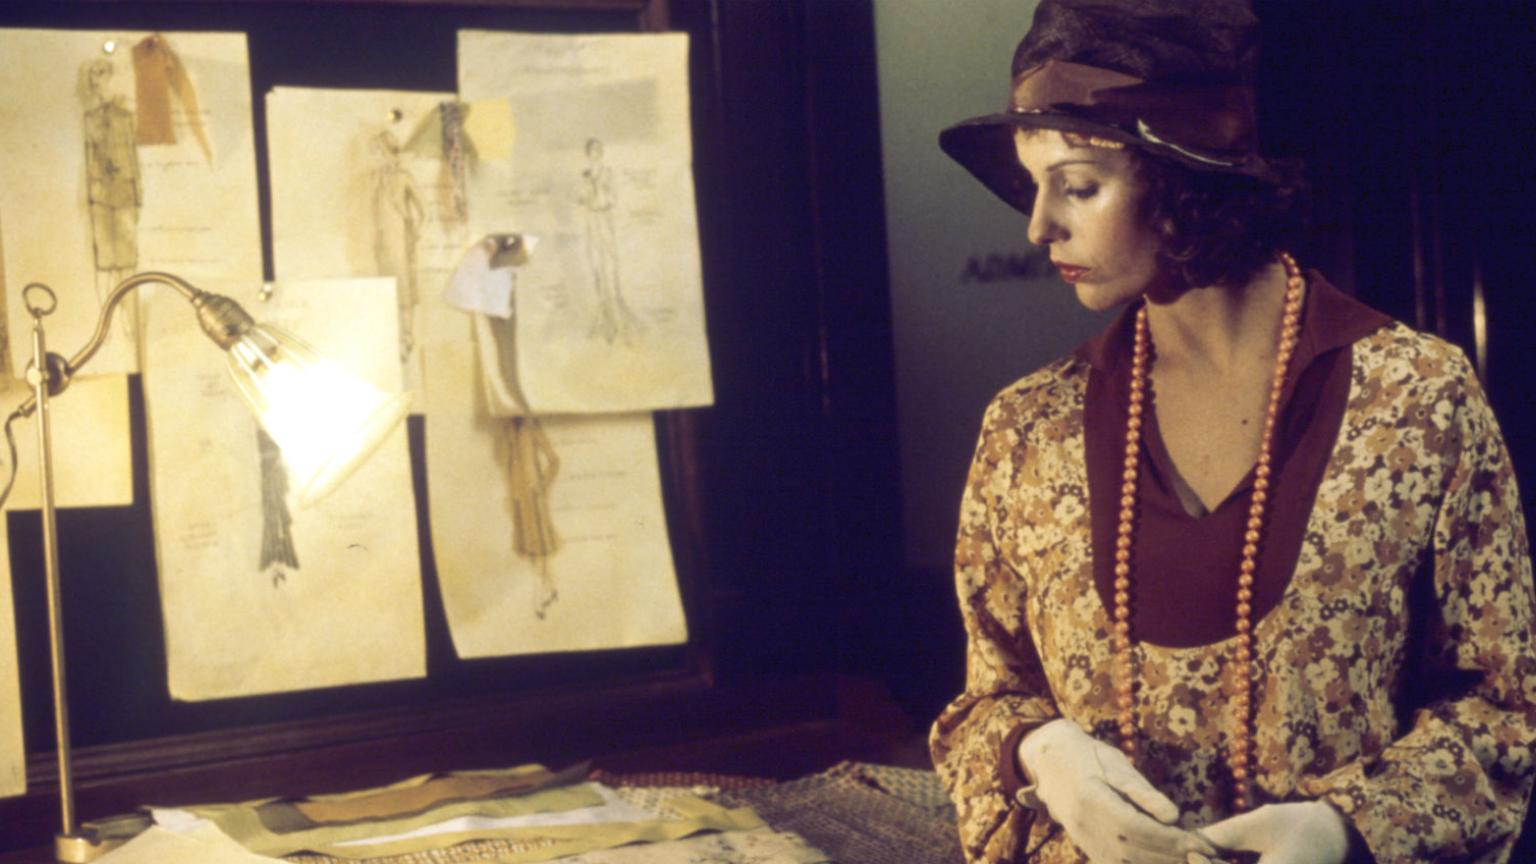 Film still of Helen Morse as Caddie looking at drawings of women's dress designs in a studio.